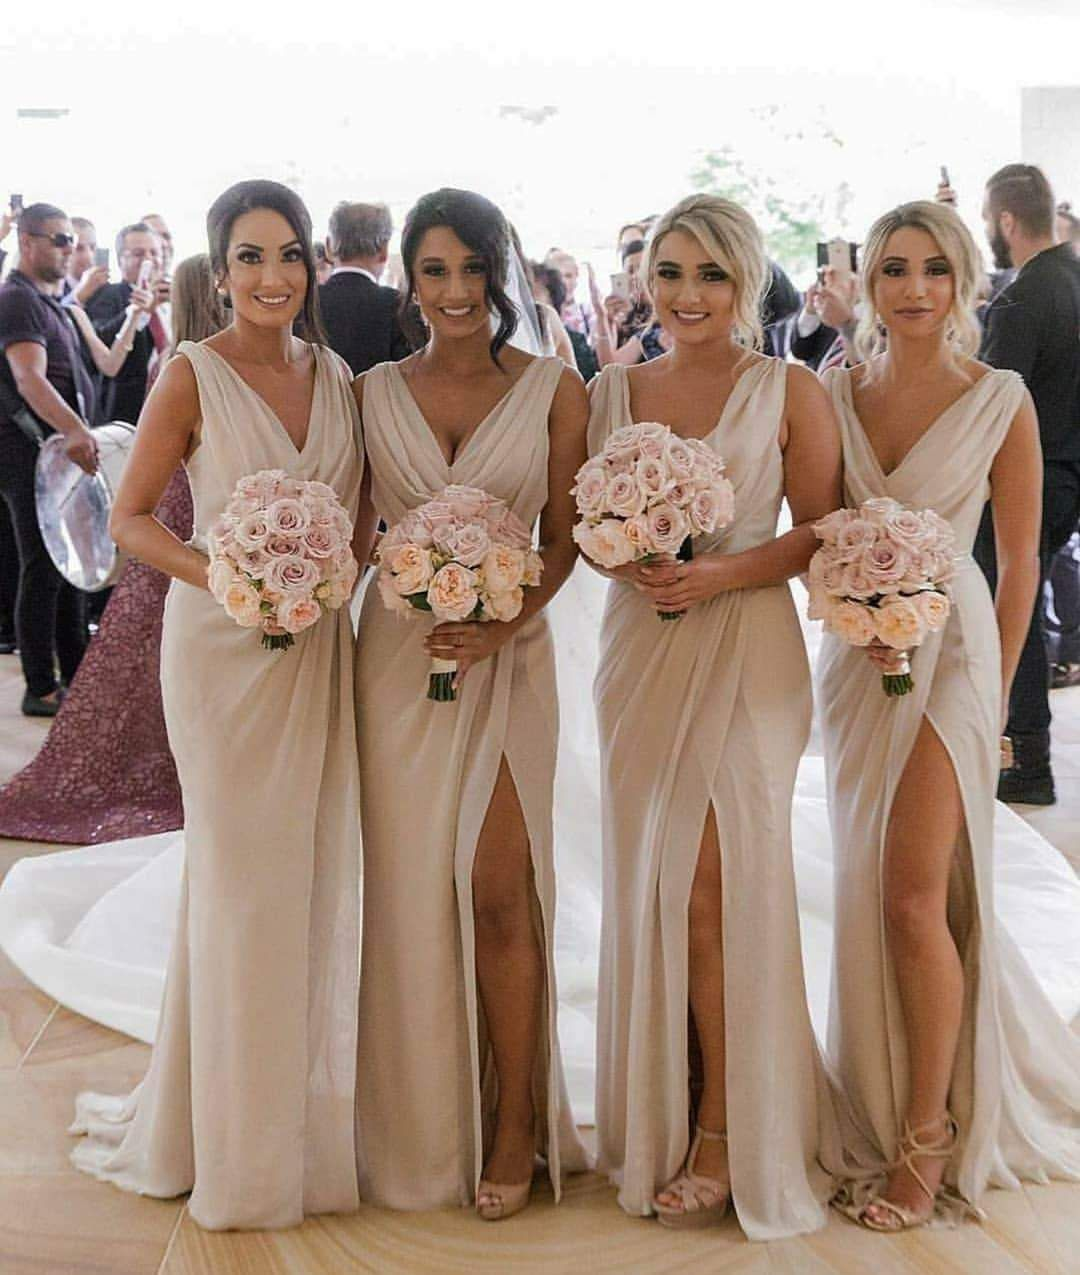 Photo of Elegant Bridesmaid Dresses Long Chiffon | Dresses for bridesmaids_bridesmaid dresses_dresses for wedding guests_ bride dresses, prom dresses, evening dresses